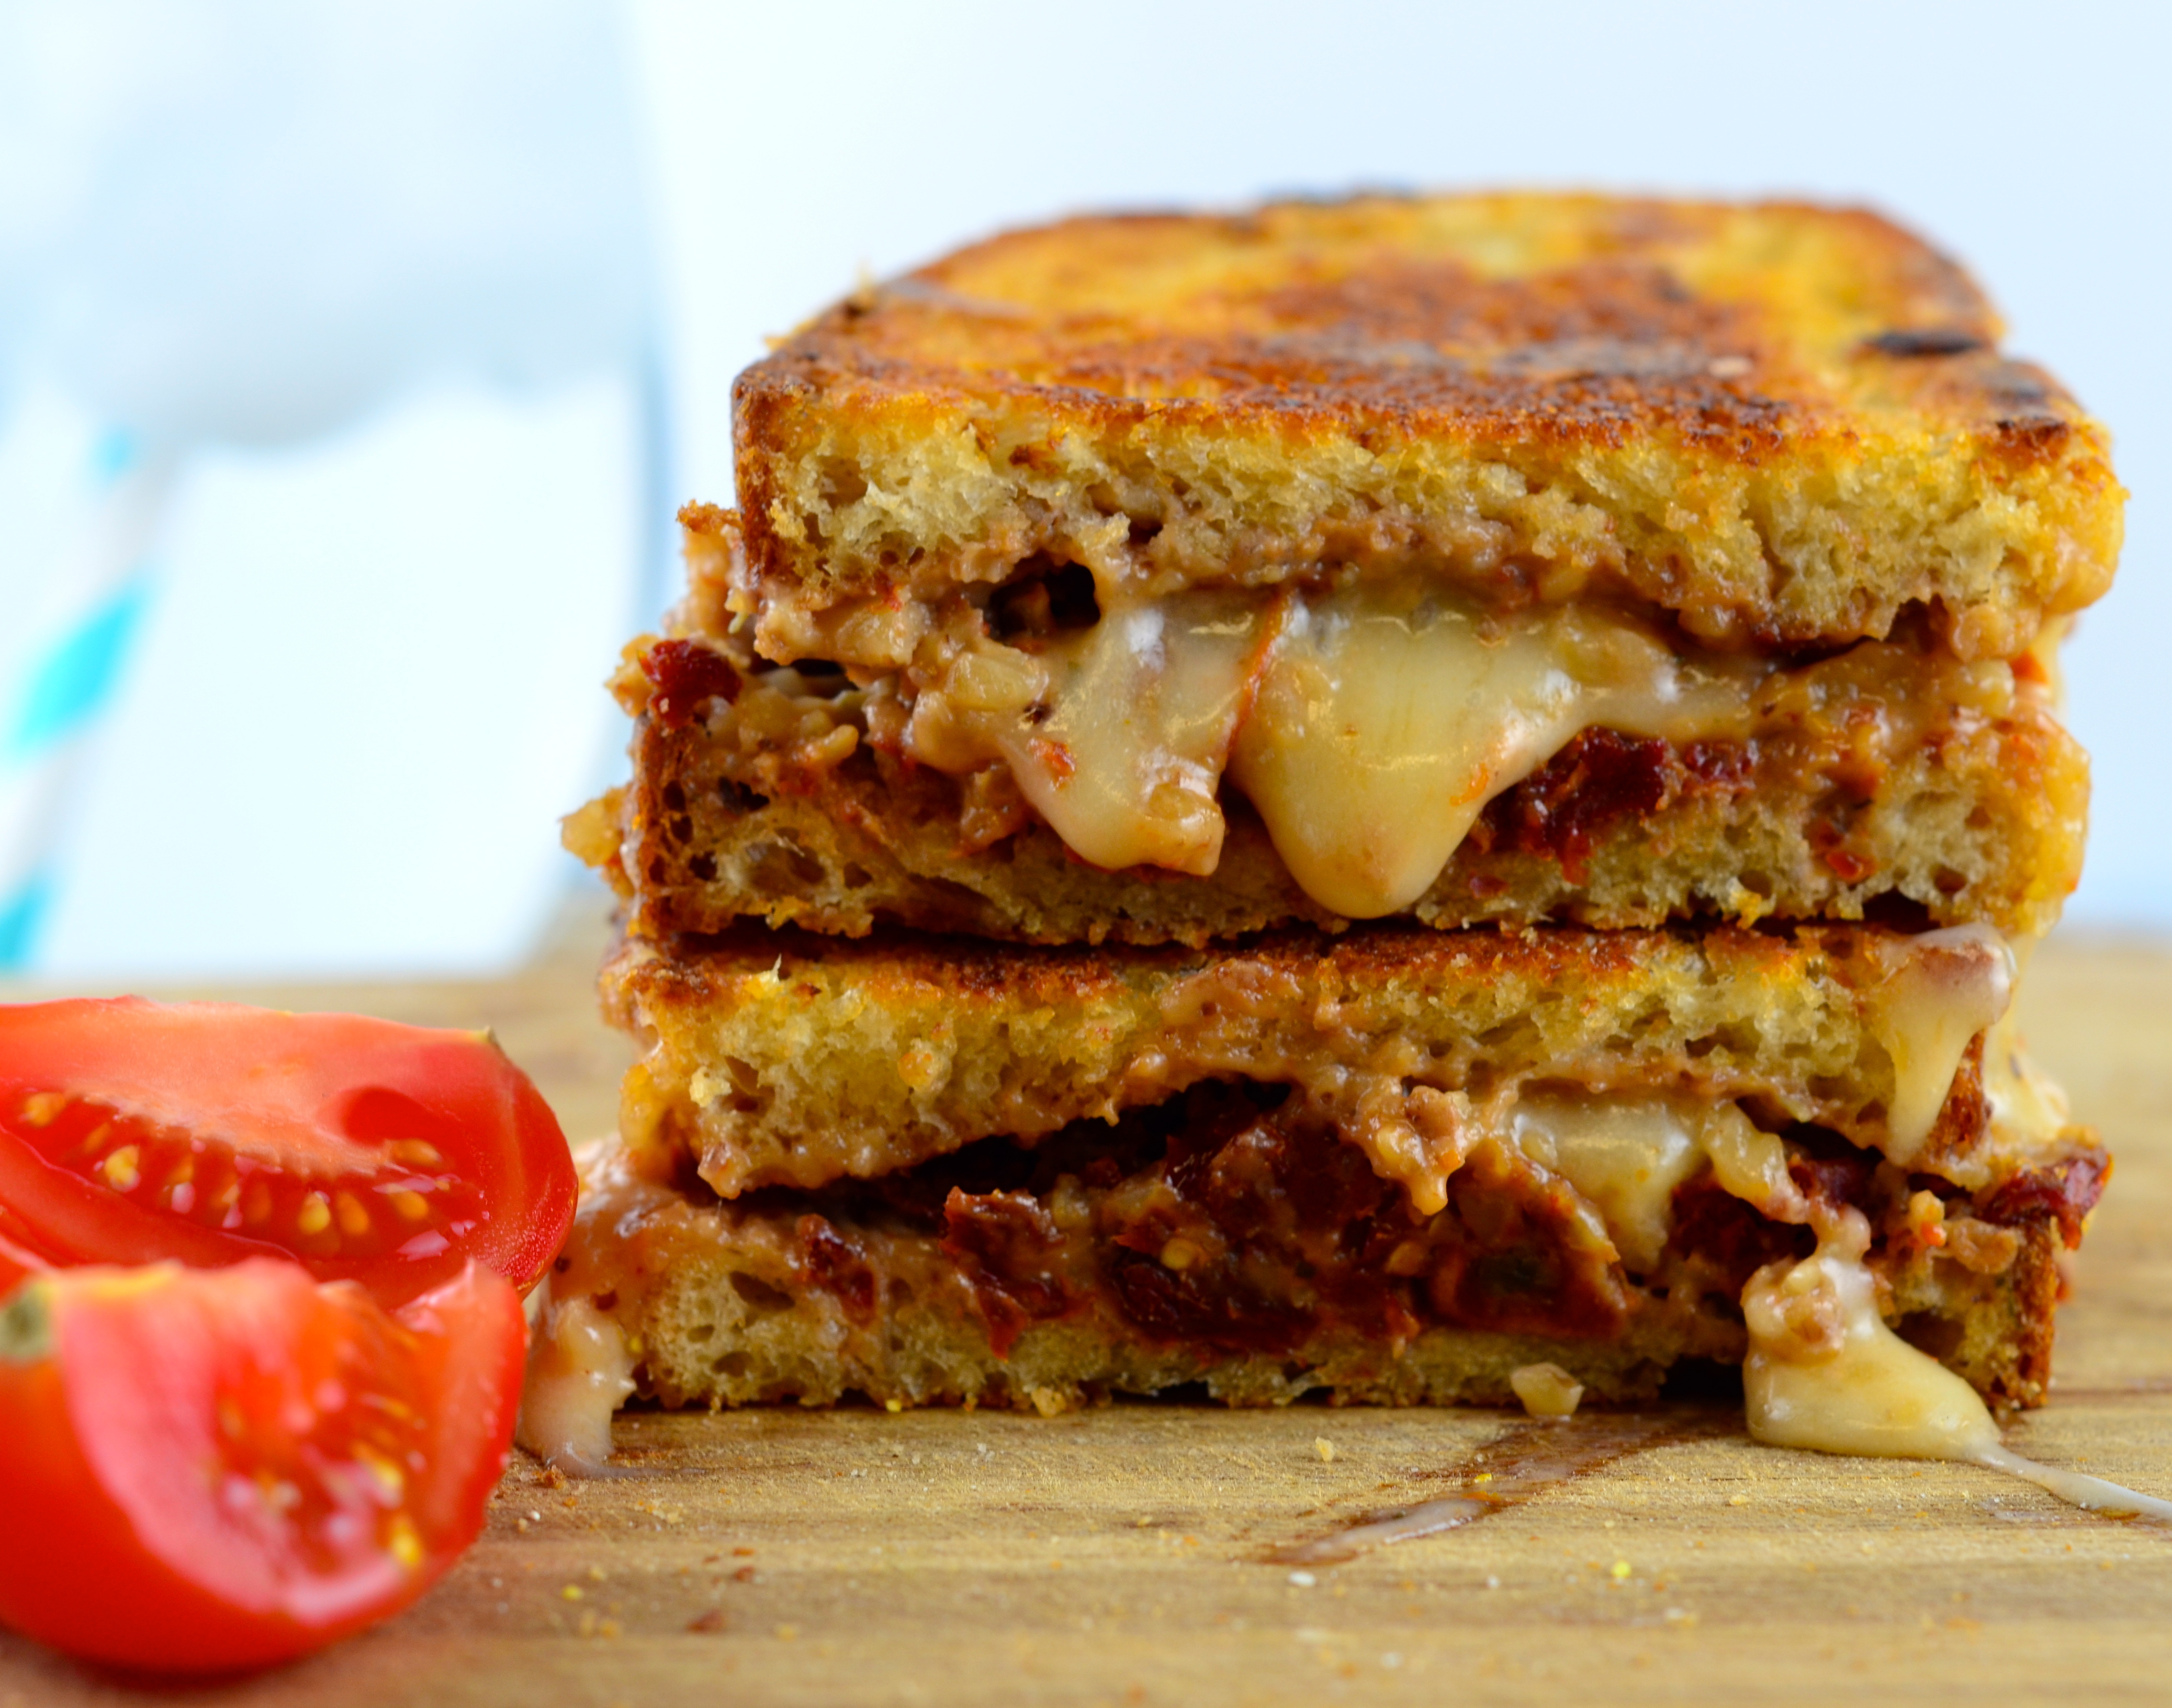 Vegan Walnut, Sun Dried Tomato & Basil Grilled Cheese Sandwich